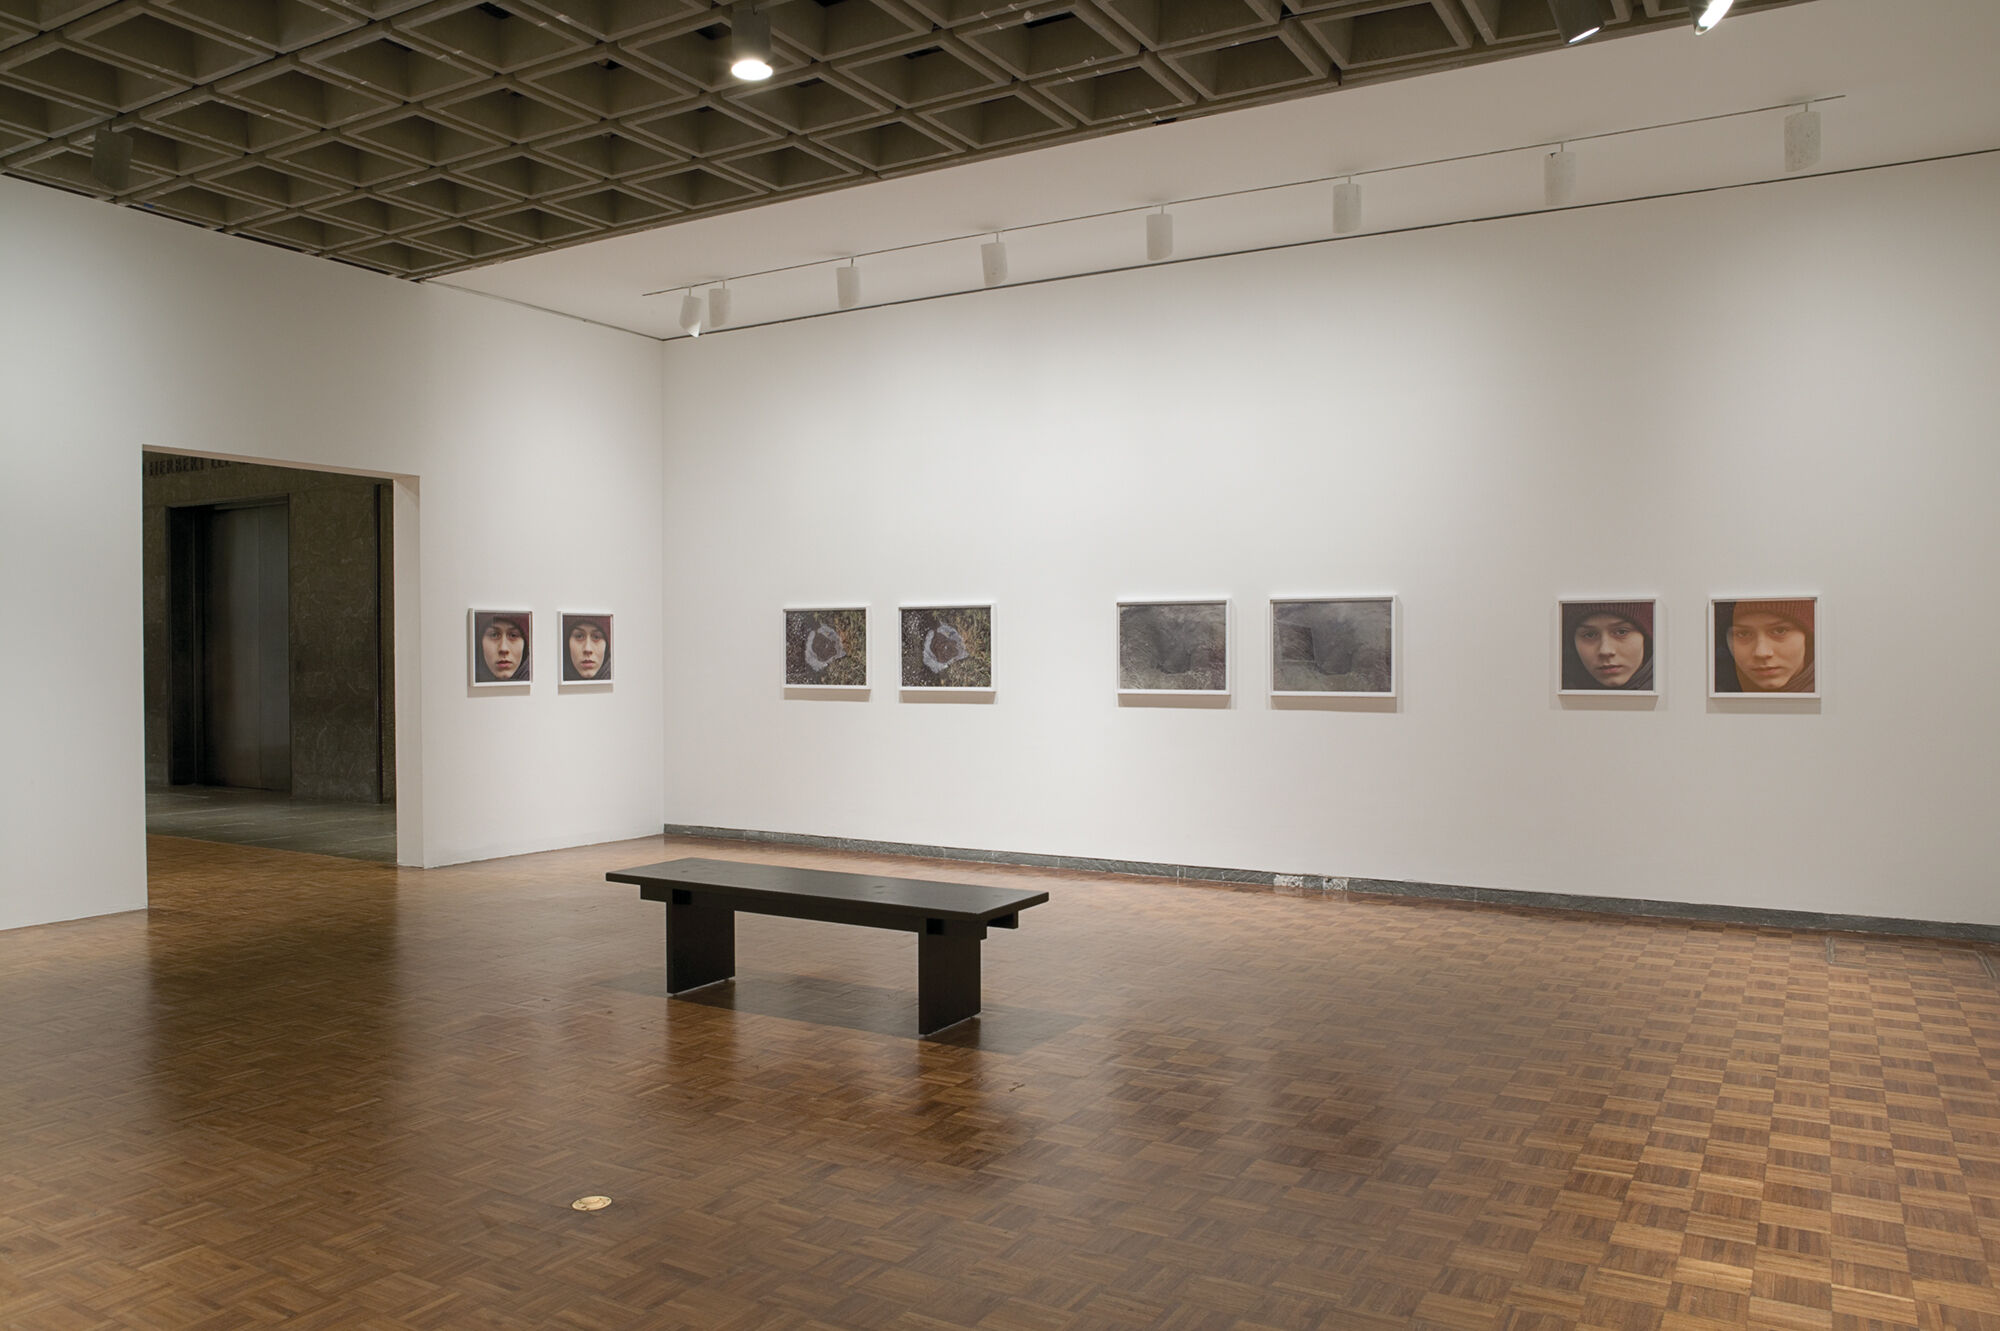 Works of art displayed in a gallery with a bench.